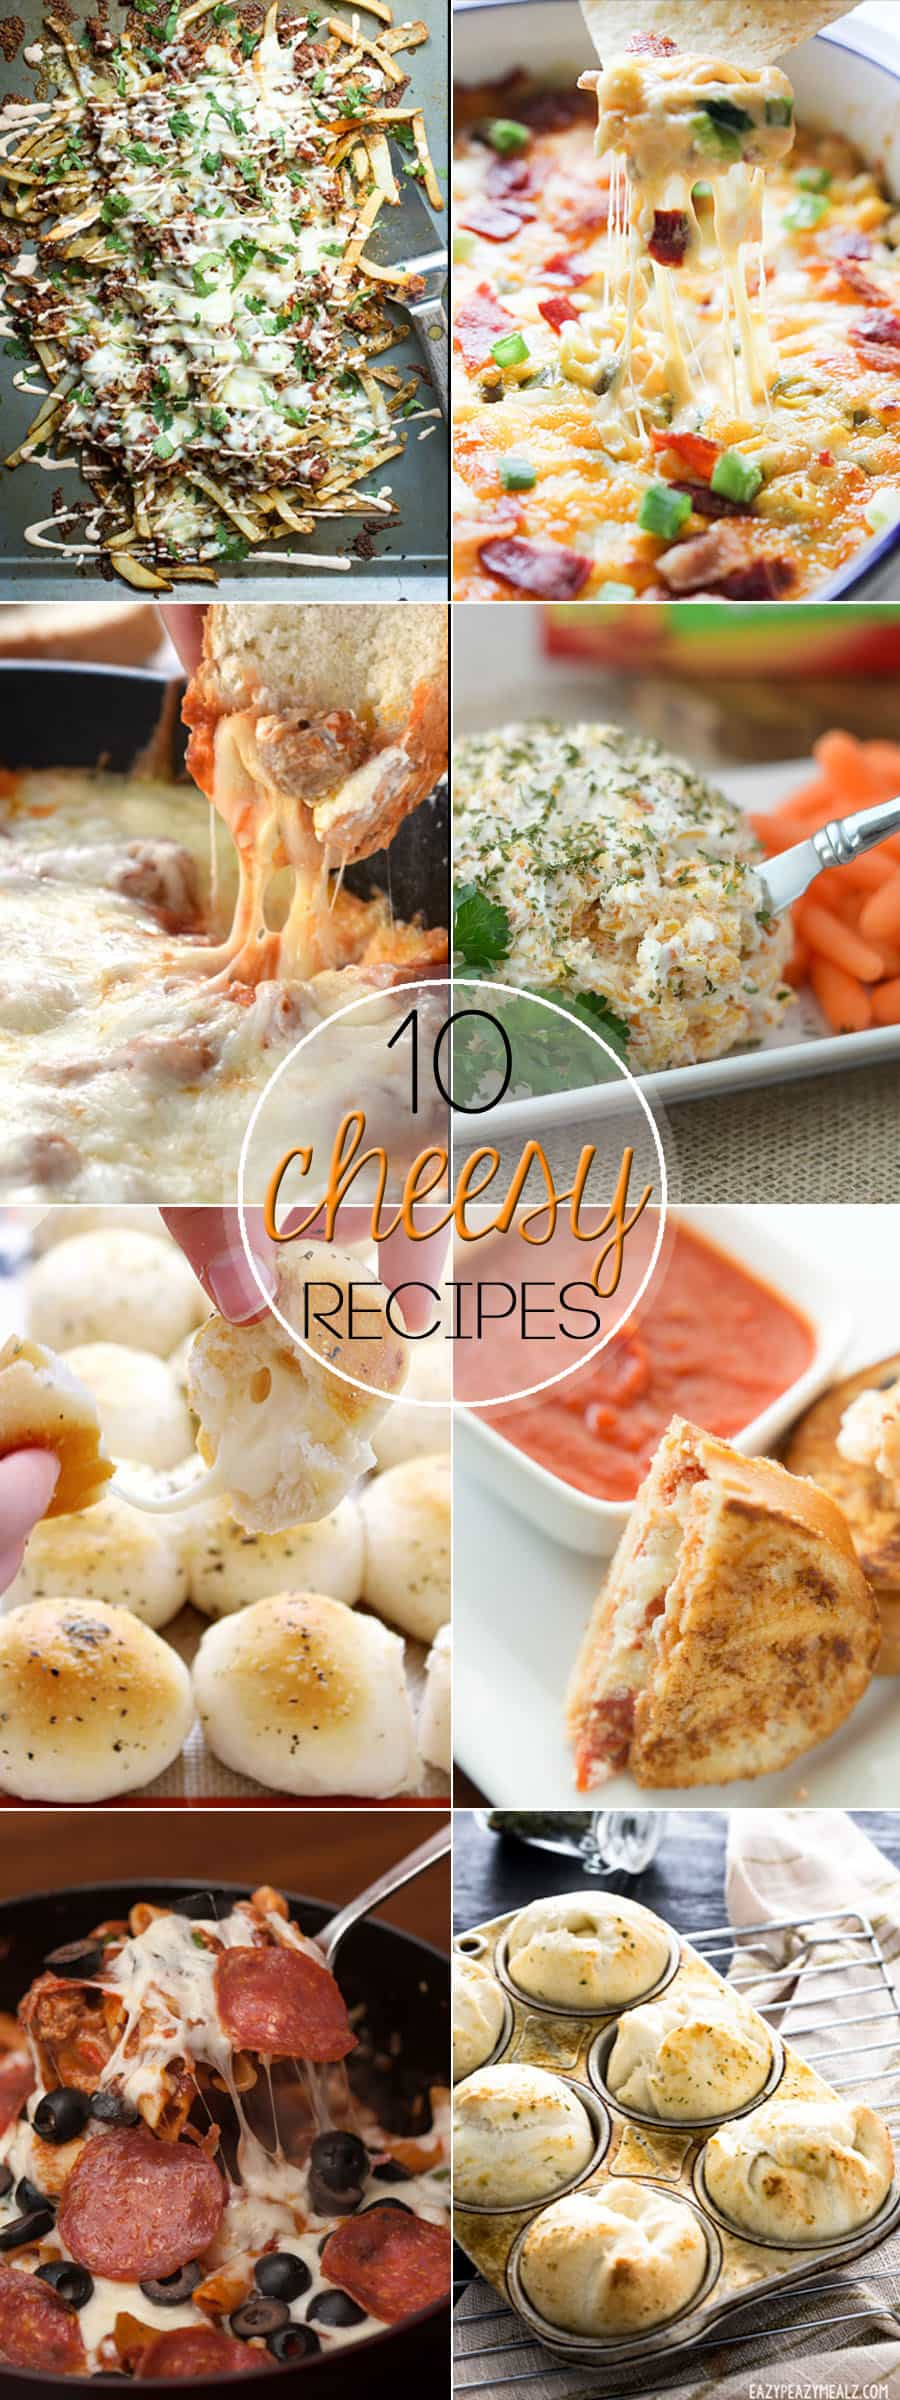 If you're like me and think cheese deserves its own food group, then you will love these 10 Recipes Where Cheese is the Star!